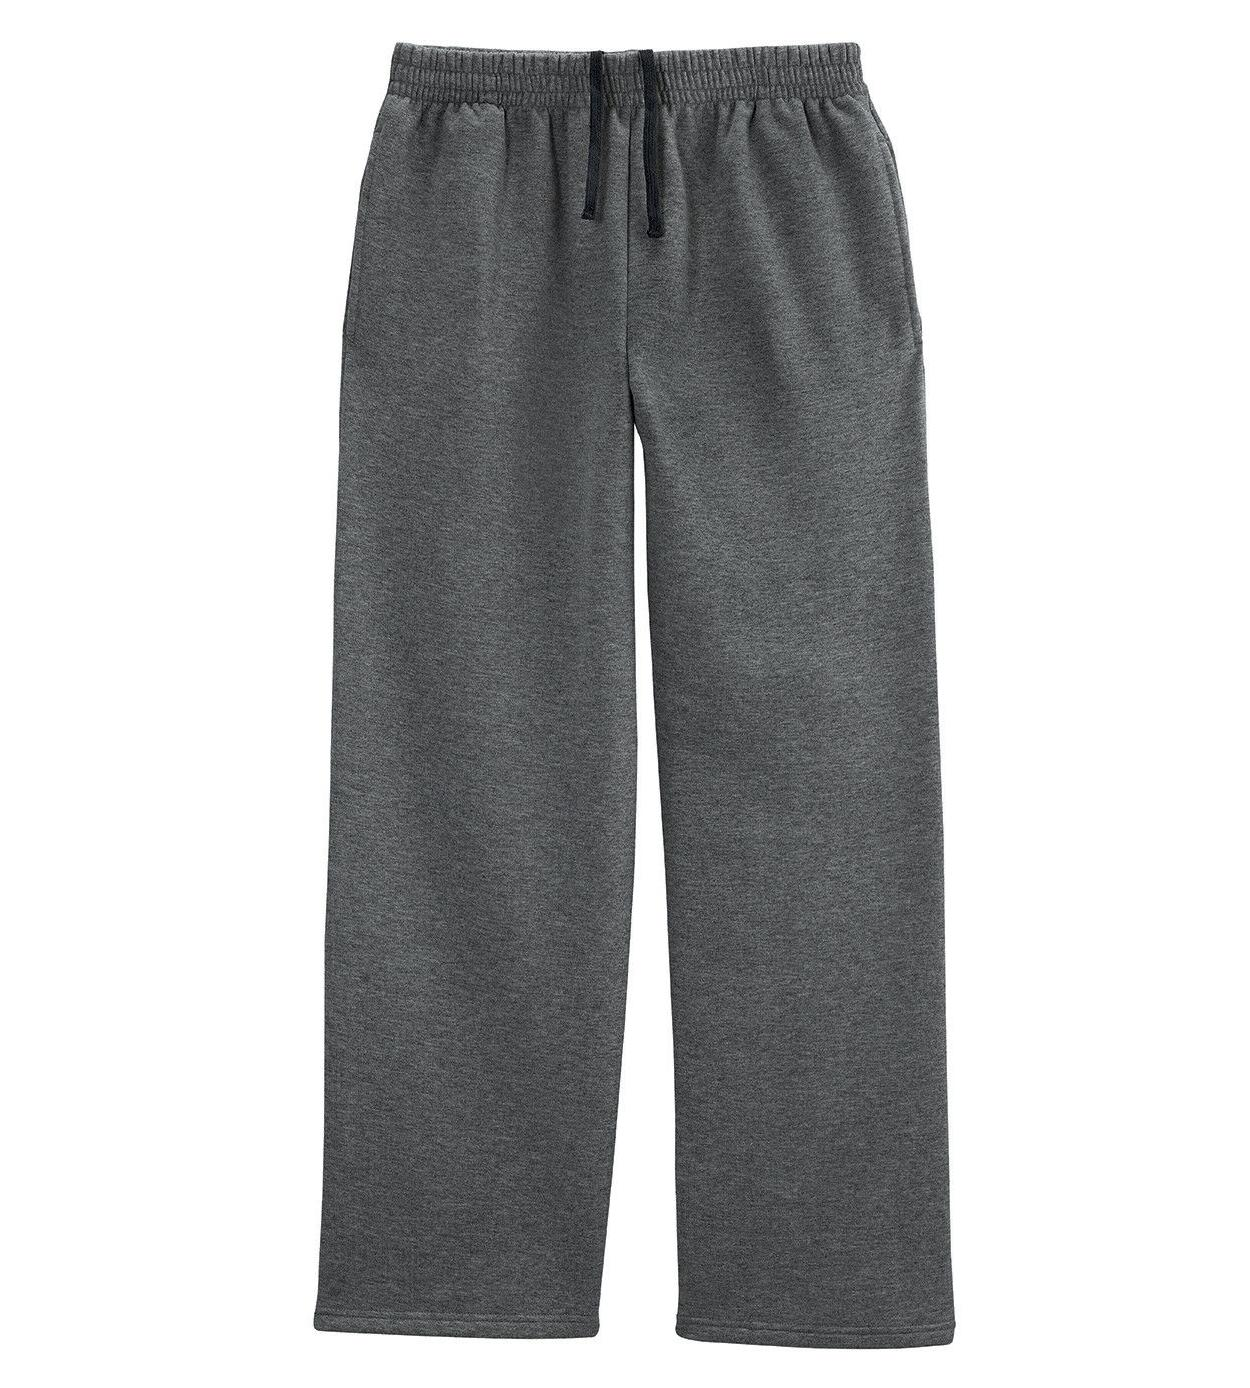 Fruit The - OPEN BOTTOM POCKET Sweatpants, Sweats S-XL,